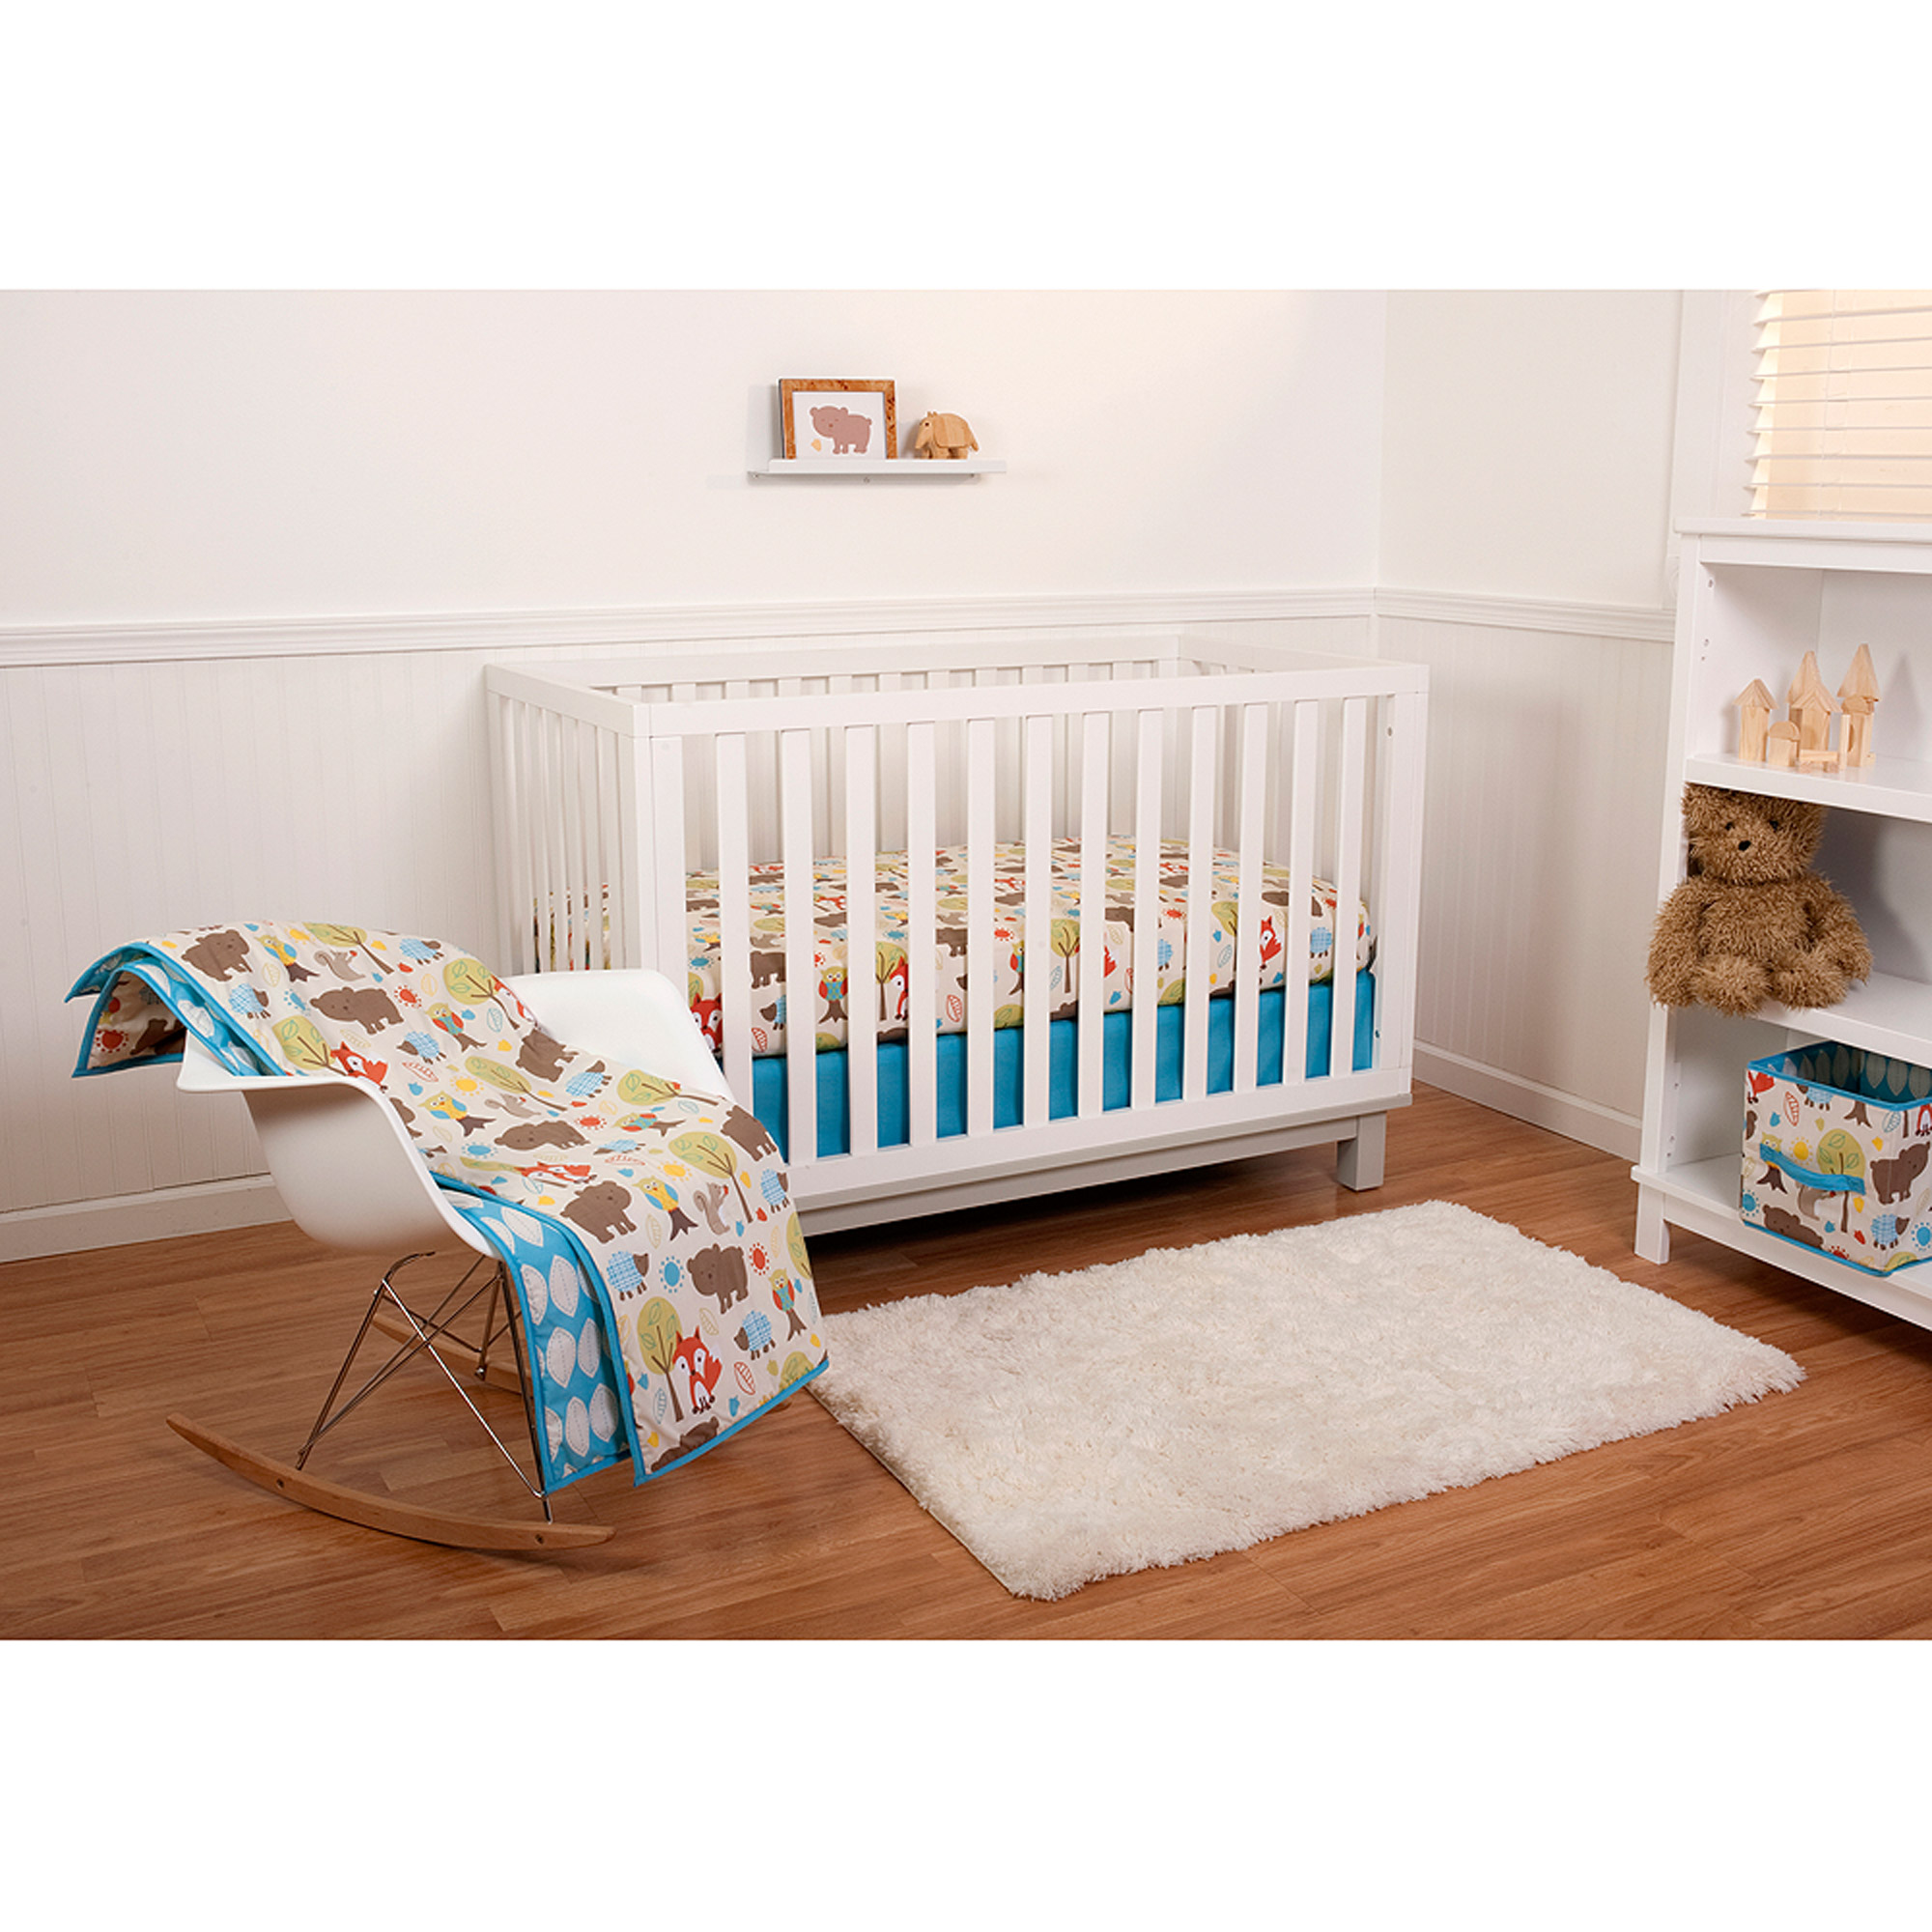 Little Bedding by Nojo Reversible Woodlands/Blue Leaf Print 6-Piece Crib Bedding Set